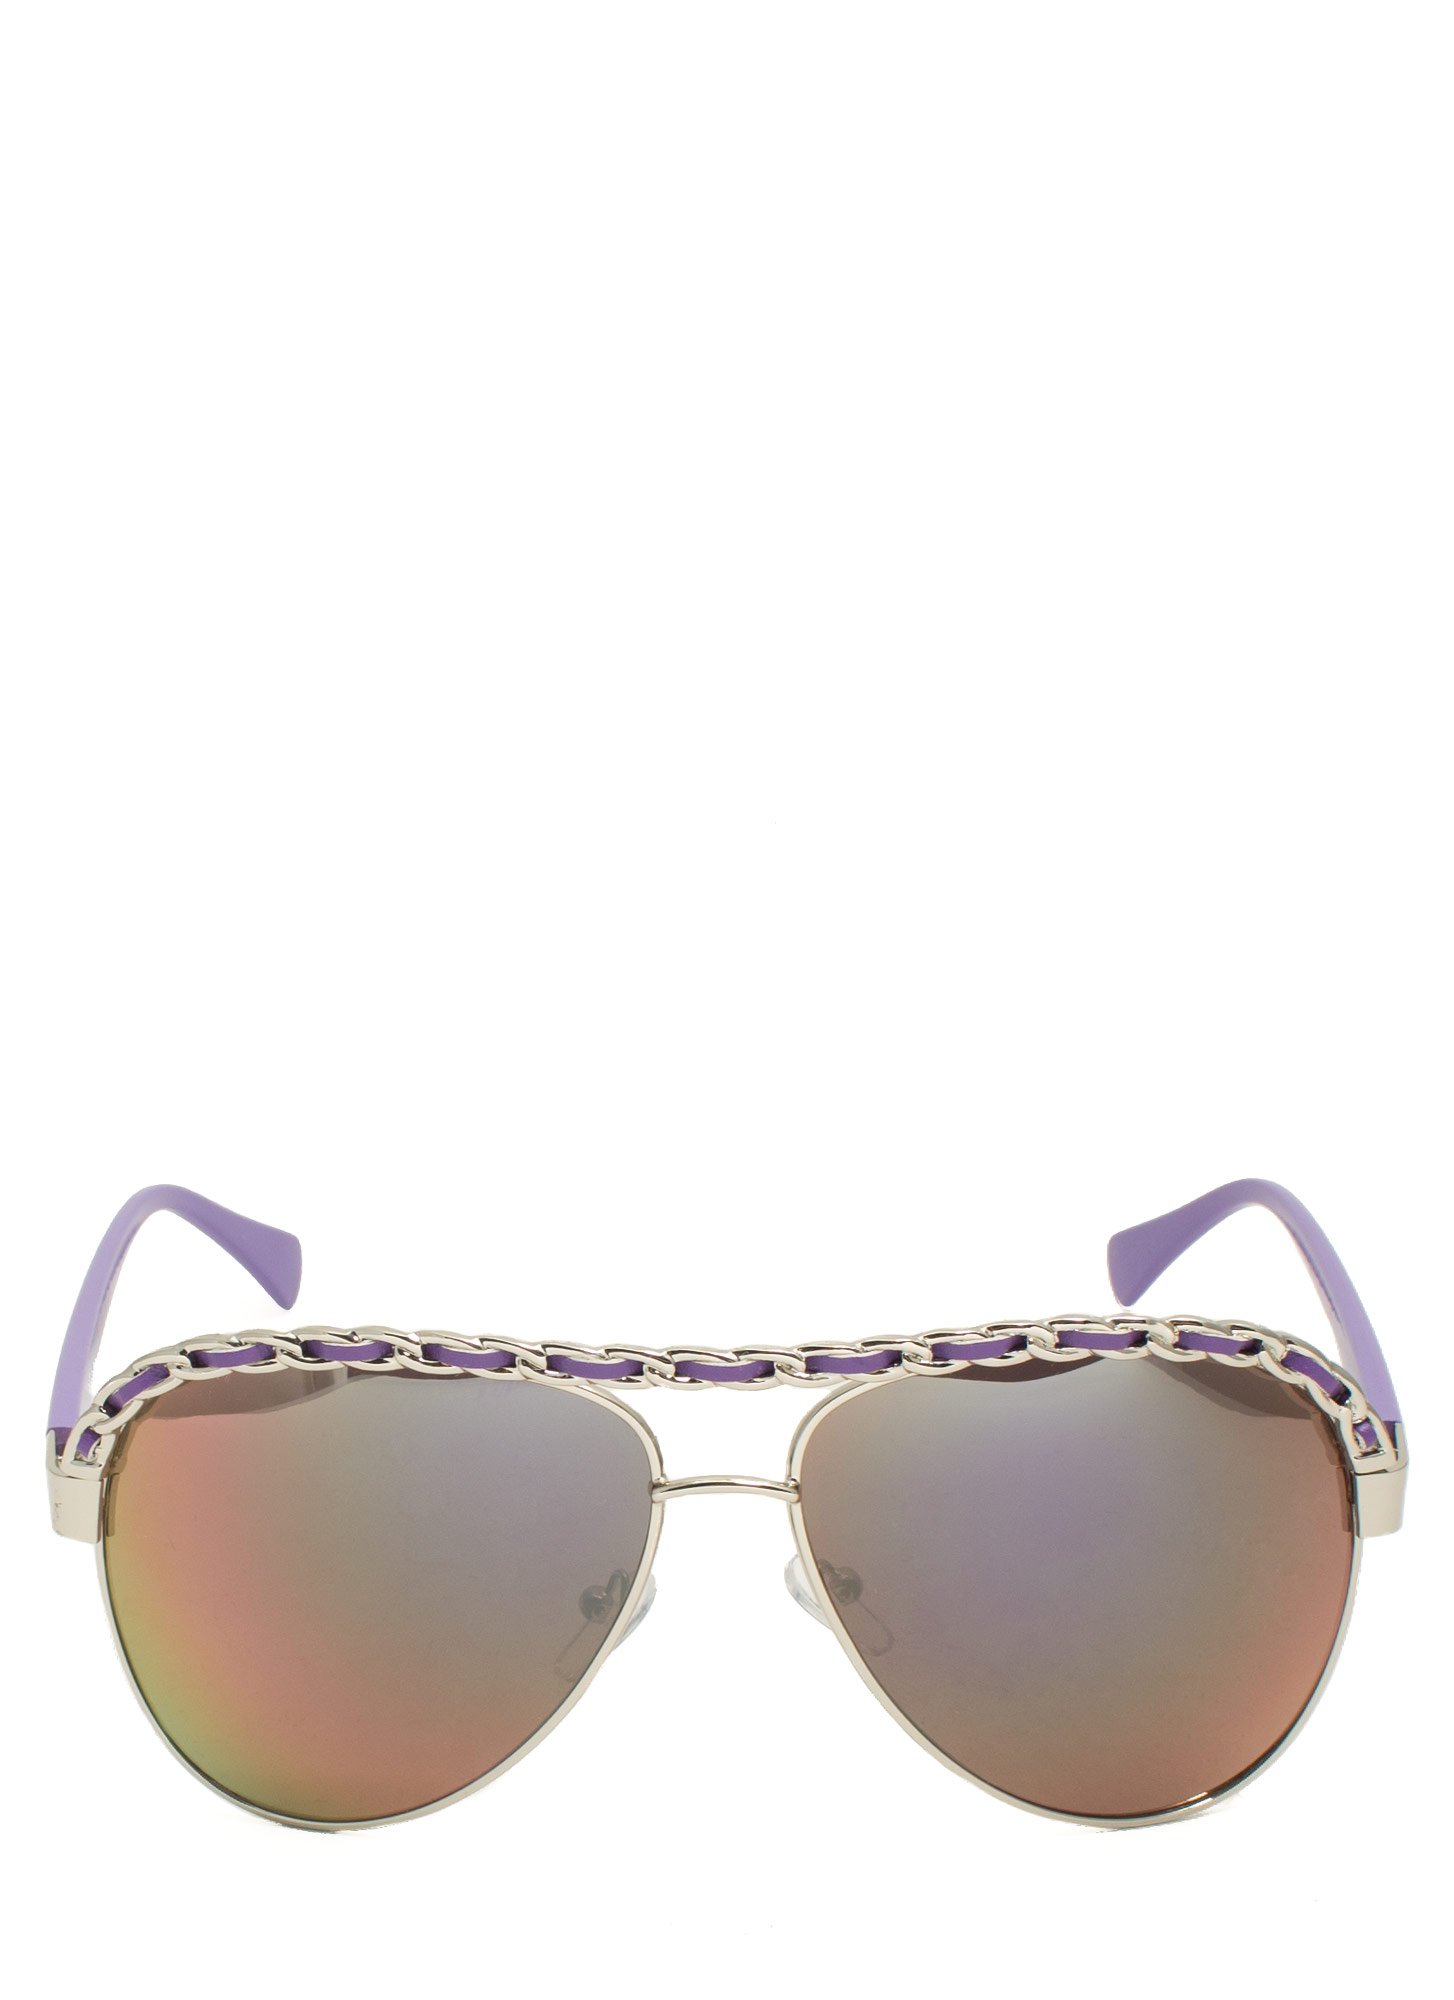 Chain Trimmed Aviator Sunglasses PURPSILVER